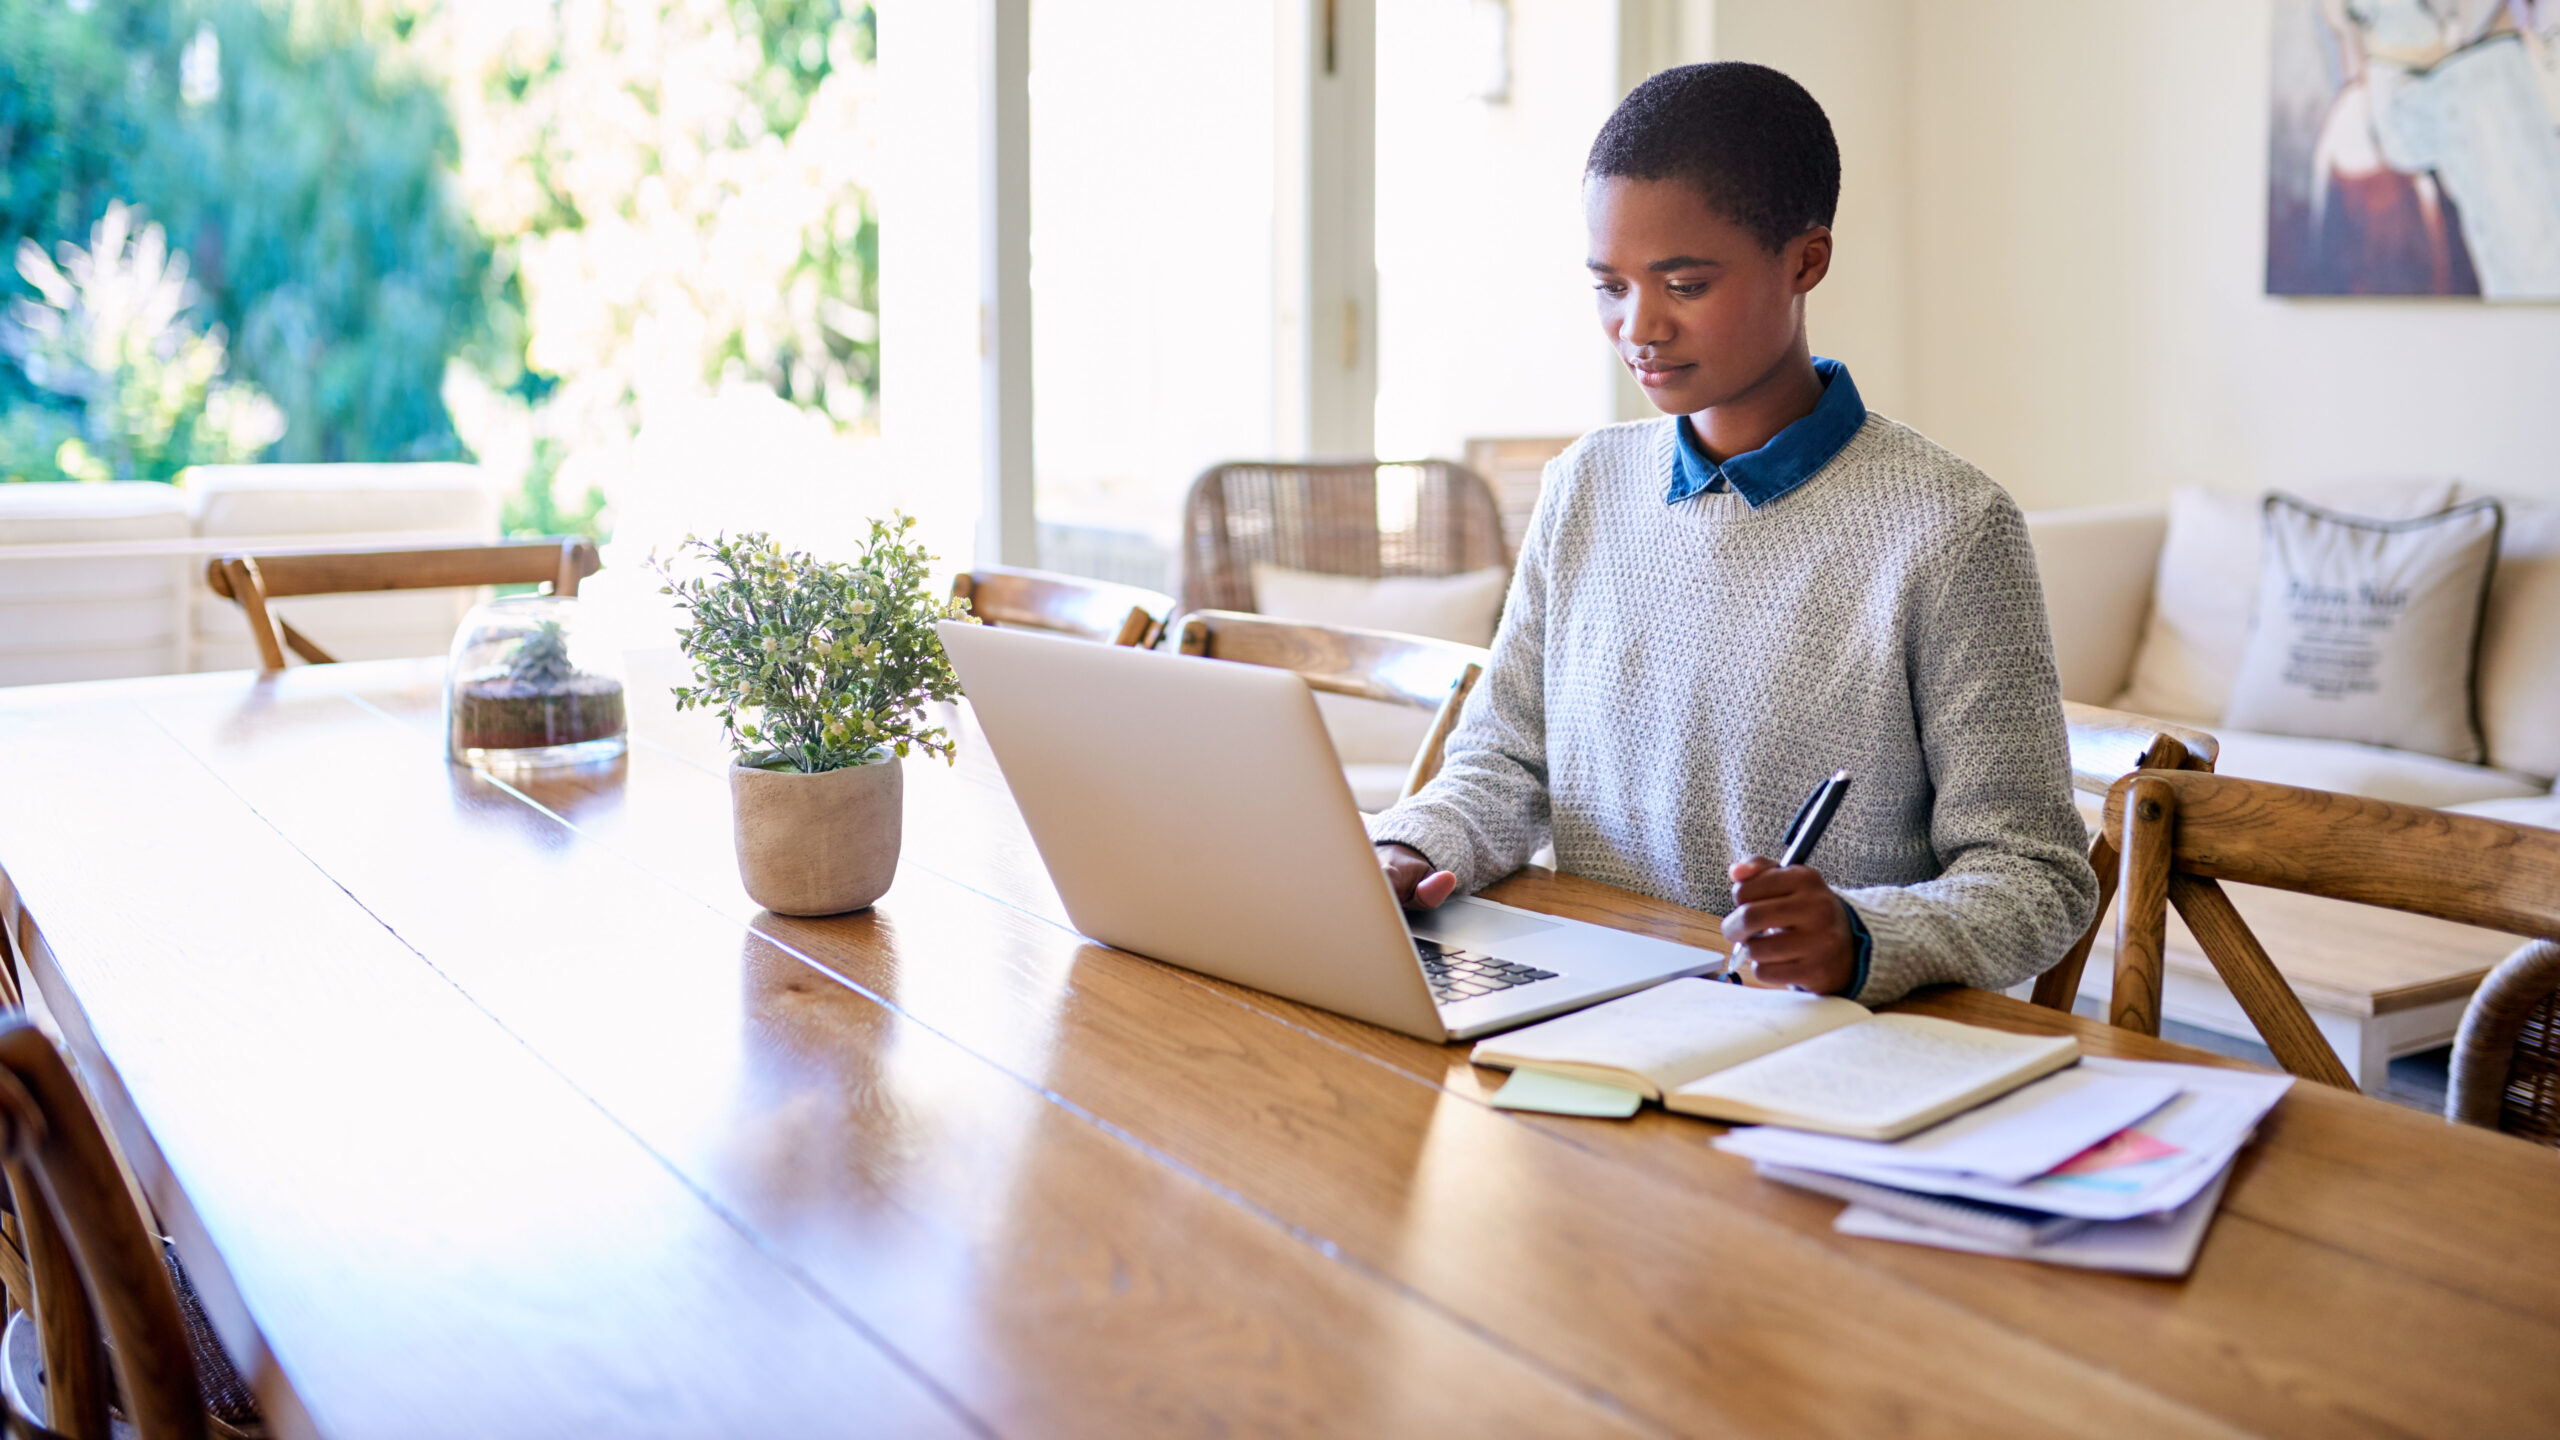 Focused young African American female entrepreneur working from home